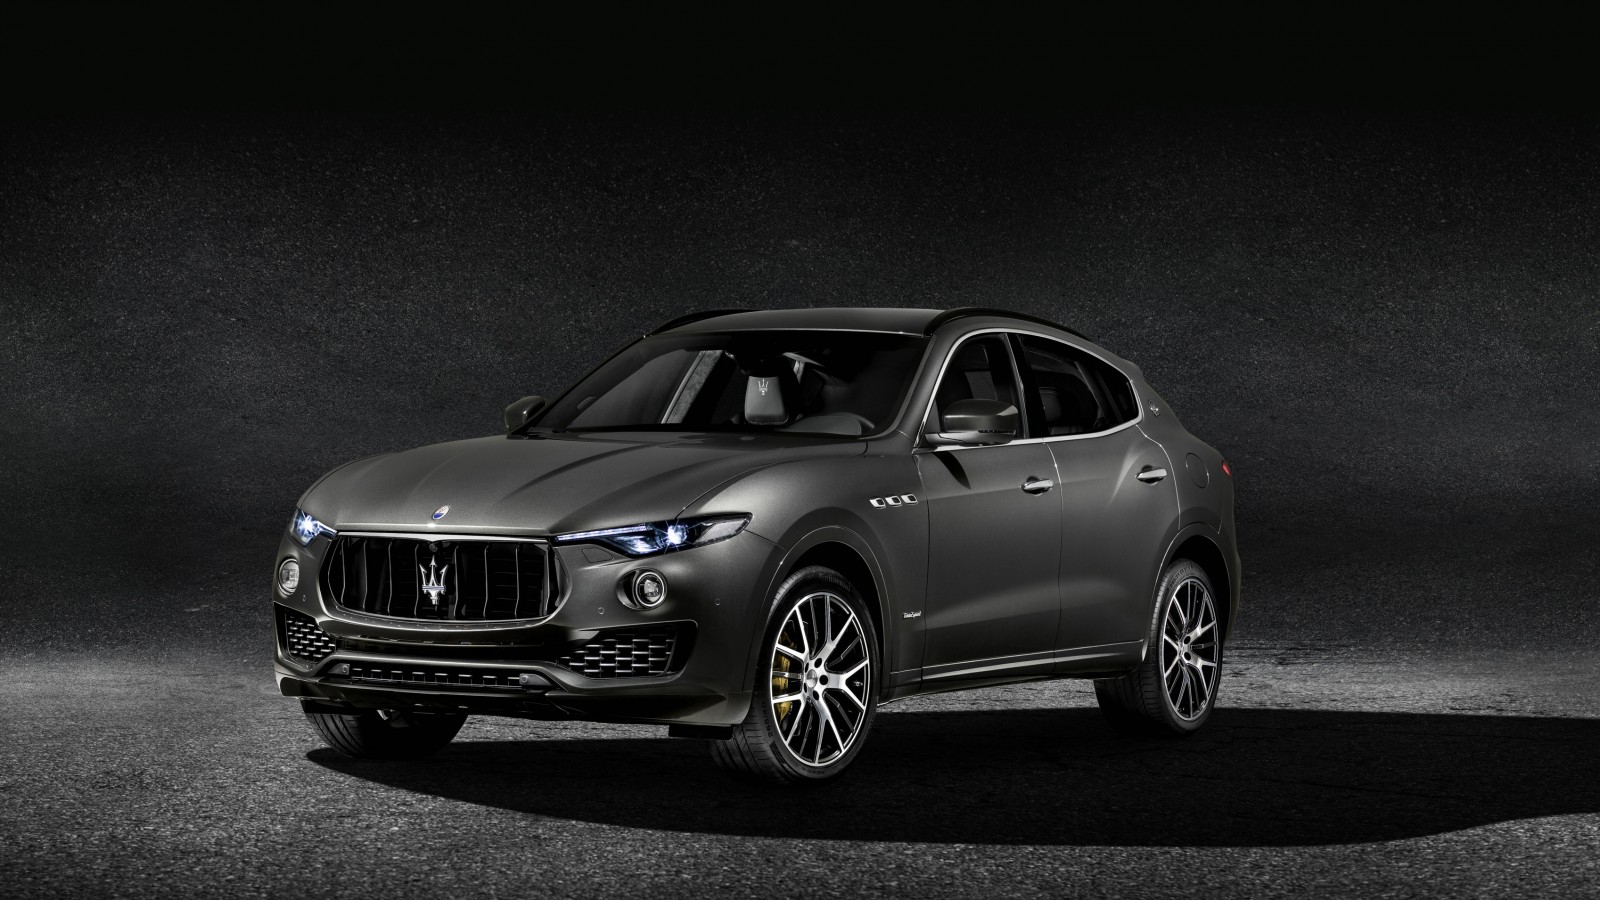 2018 Maserati Levante S Q4 Gransport Wallpaper Hd Car